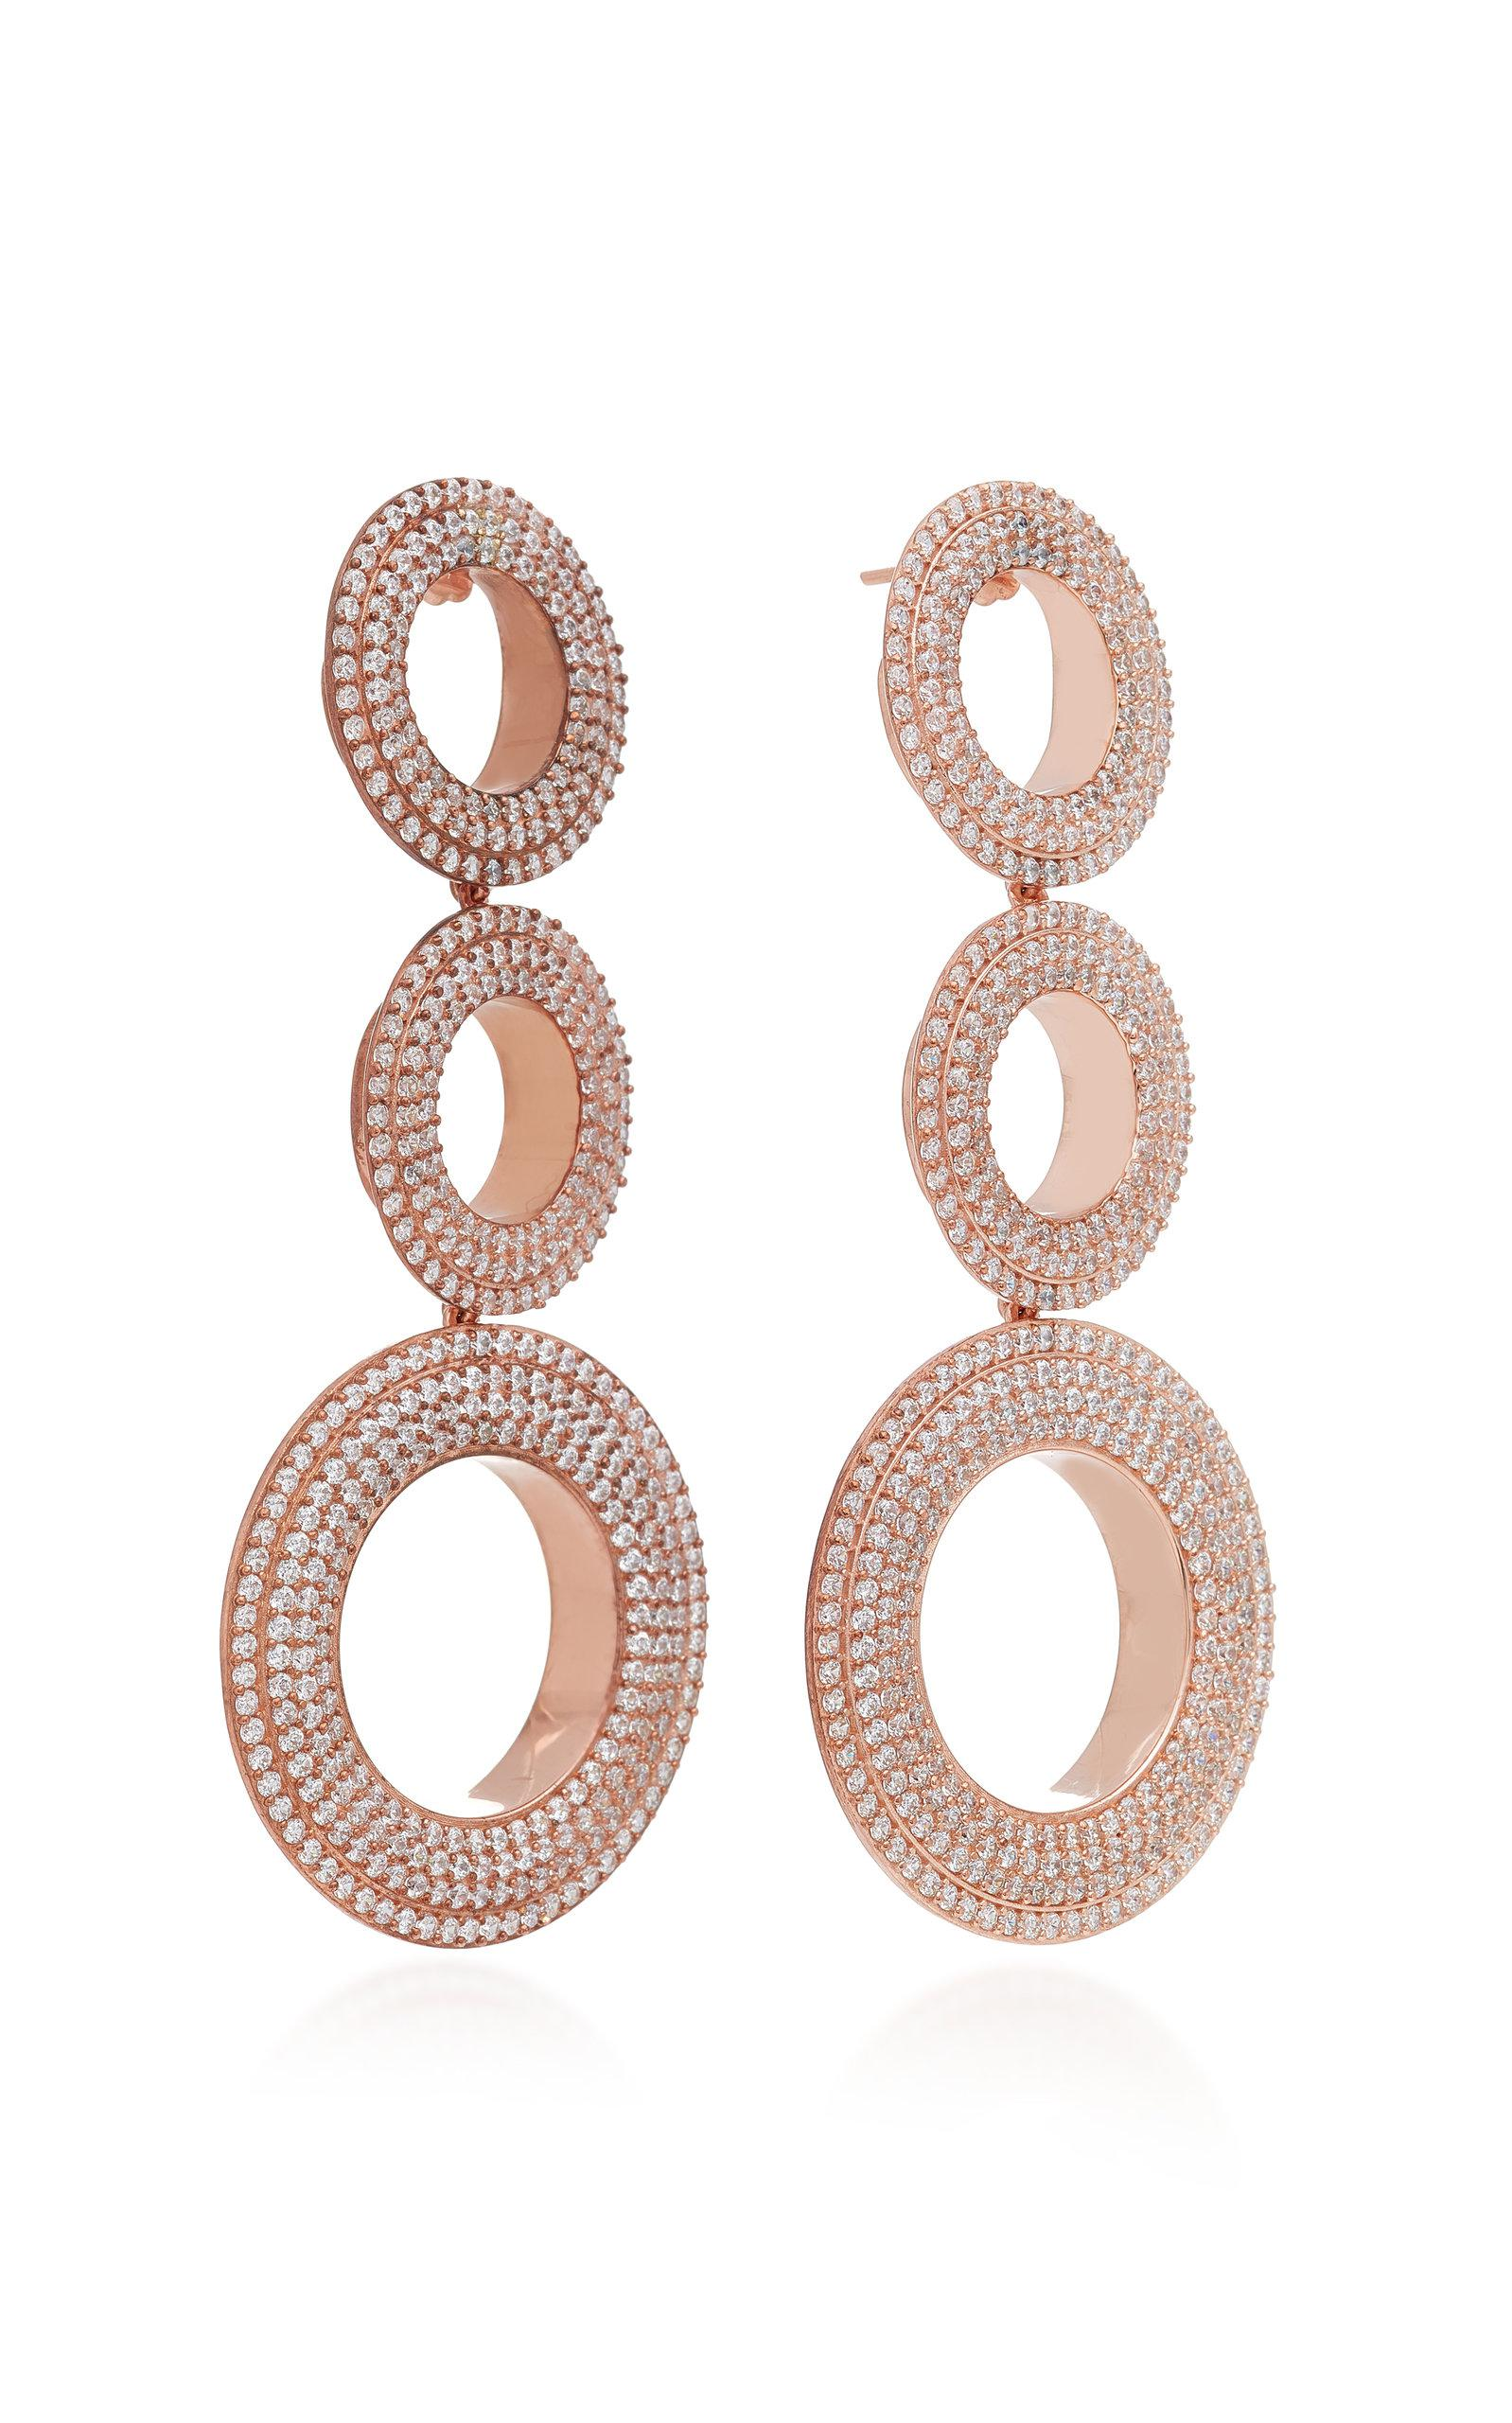 Grommet Gold-Plated Brass and Cubic Zirconia Statement Earrings Joanna Laura Constantine LanXe9r2t